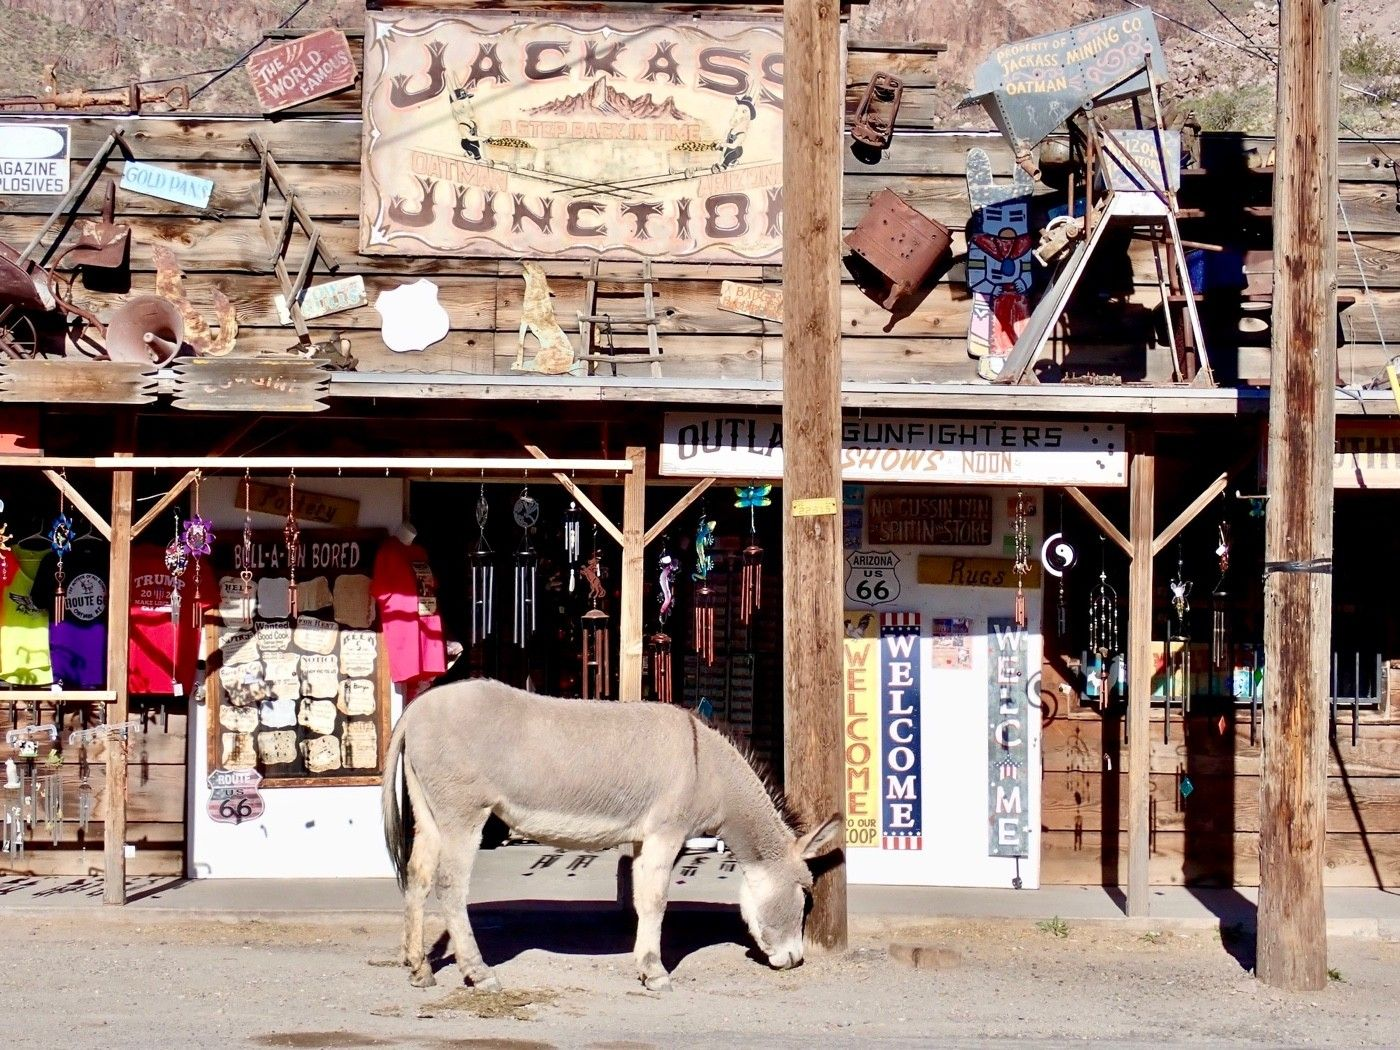 Because of the burros, people will refer to Oatman as Jackass Junction. This store sells burro food, of course.